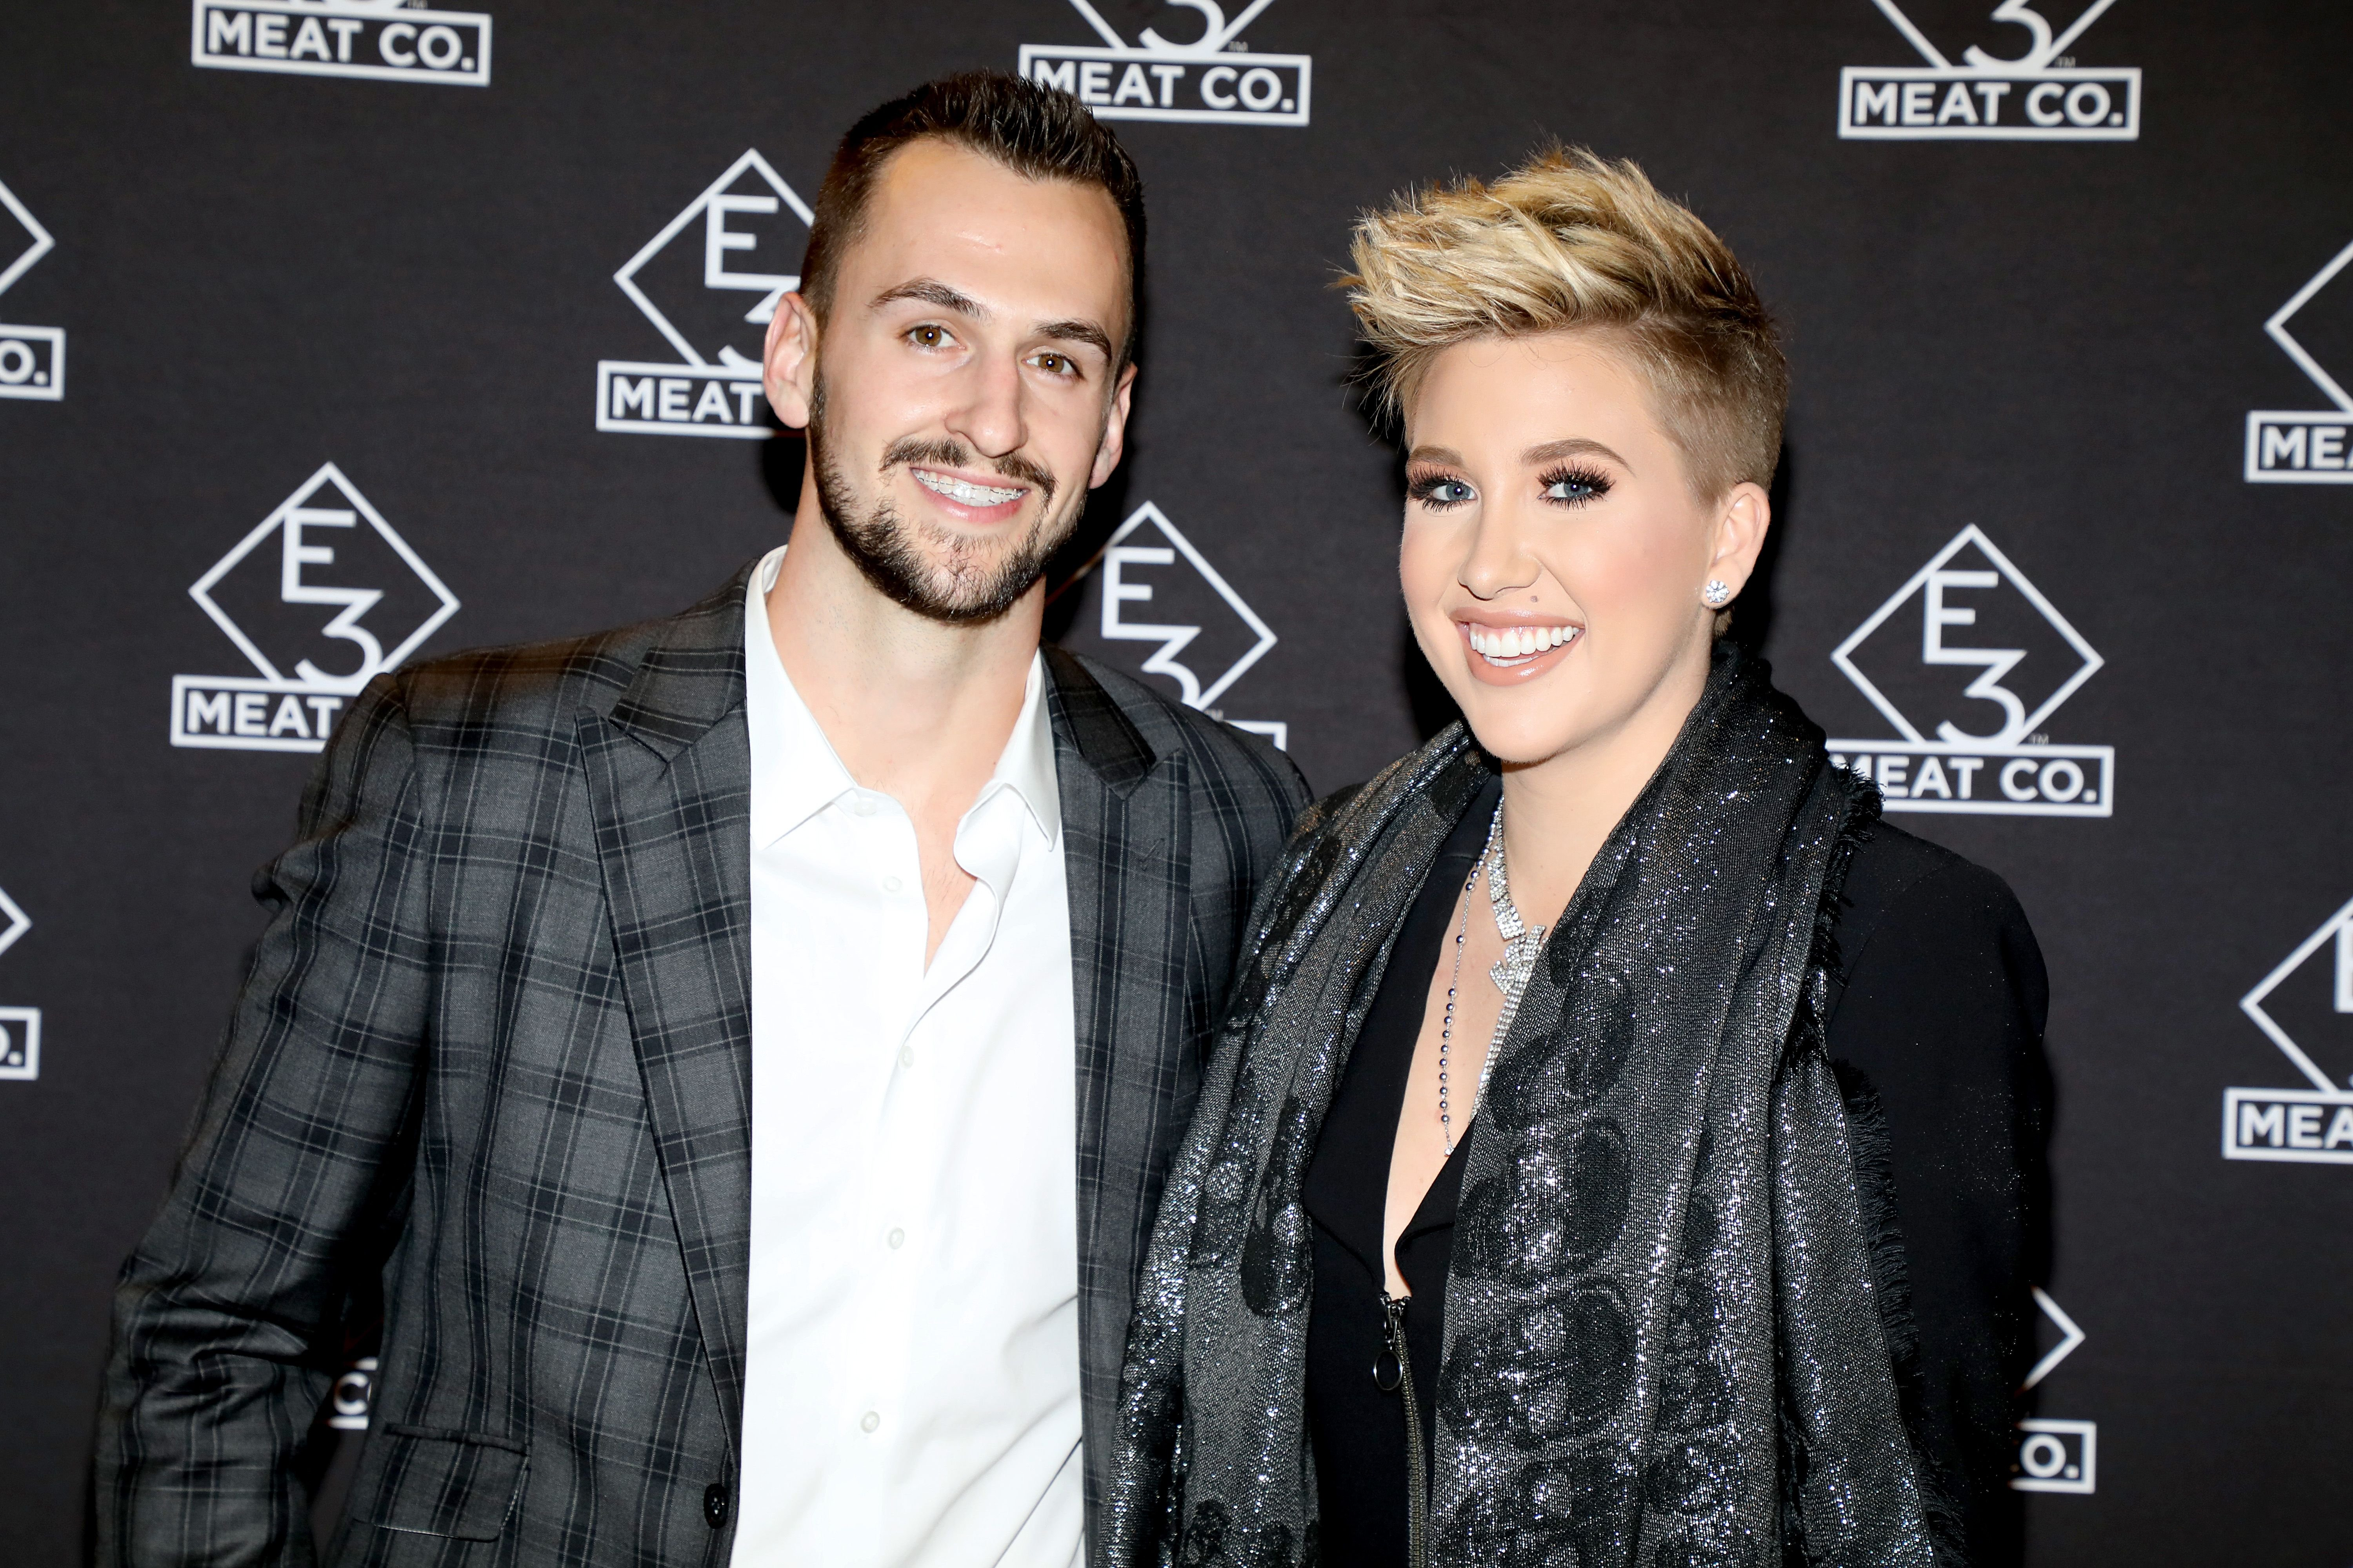 Nic Kerdiles and Savannah Chrisley attend the grand opening of E3 Chophouse Nashville on November 20, 2019, in Nashville, Tennessee.   Source: Getty Images